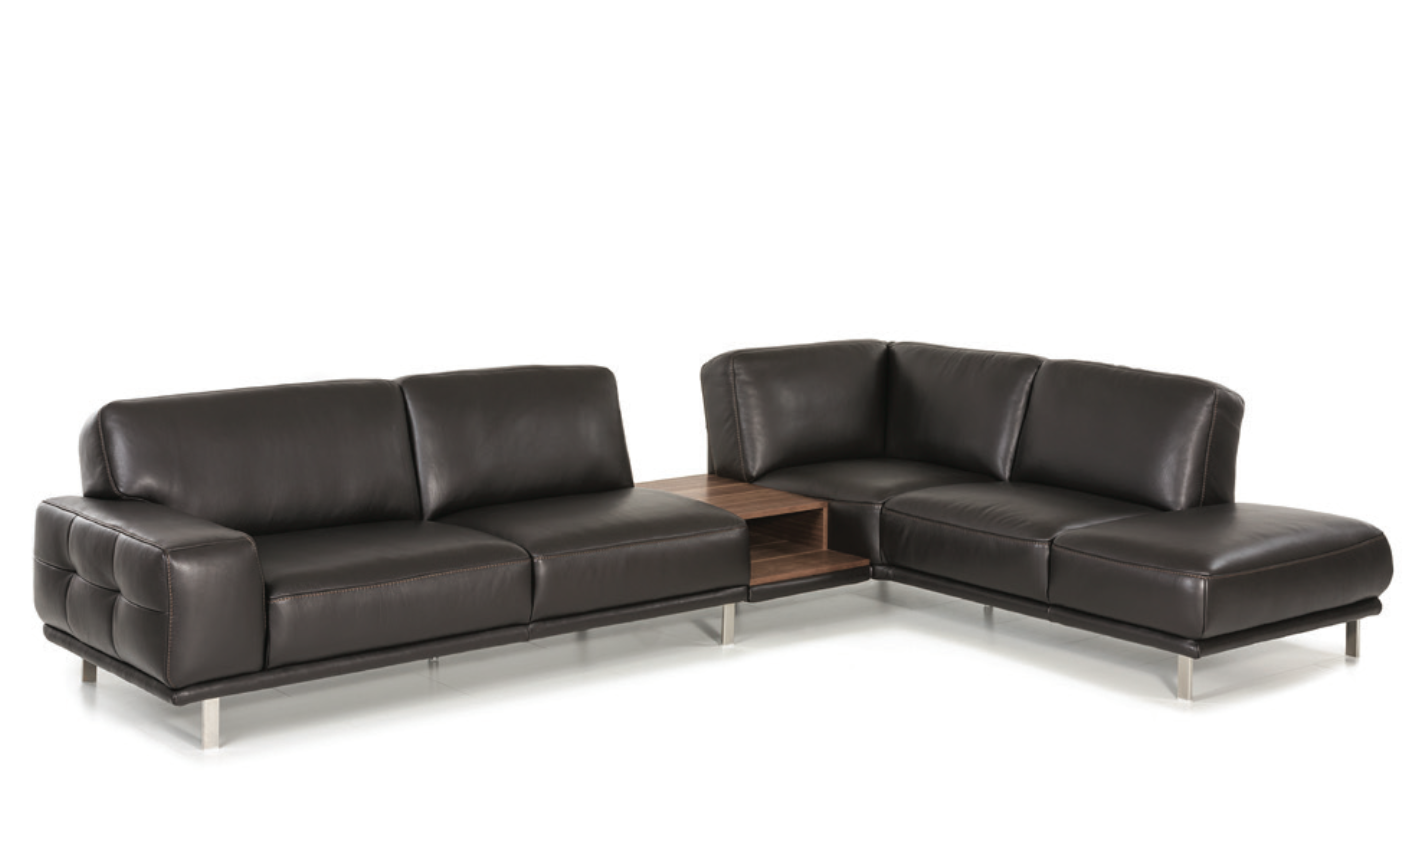 helena contemporary sectional by w schillig at nova interiors contemporary furniture store. Black Bedroom Furniture Sets. Home Design Ideas